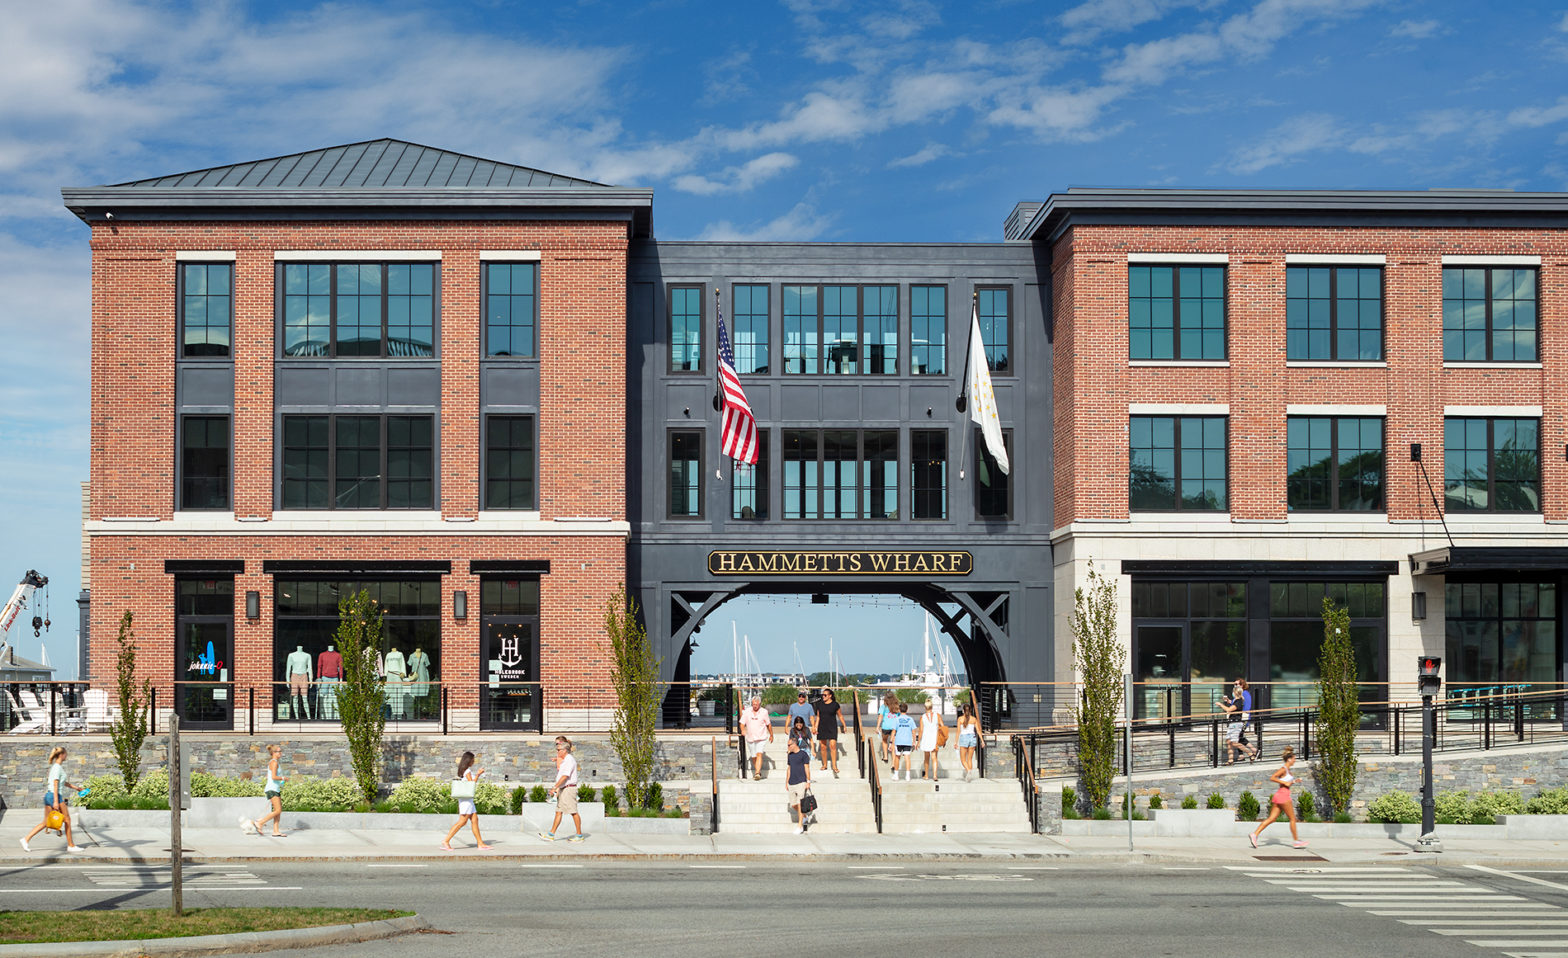 Front view of Hammetts Wharf building with pedestrians walking/shopping.